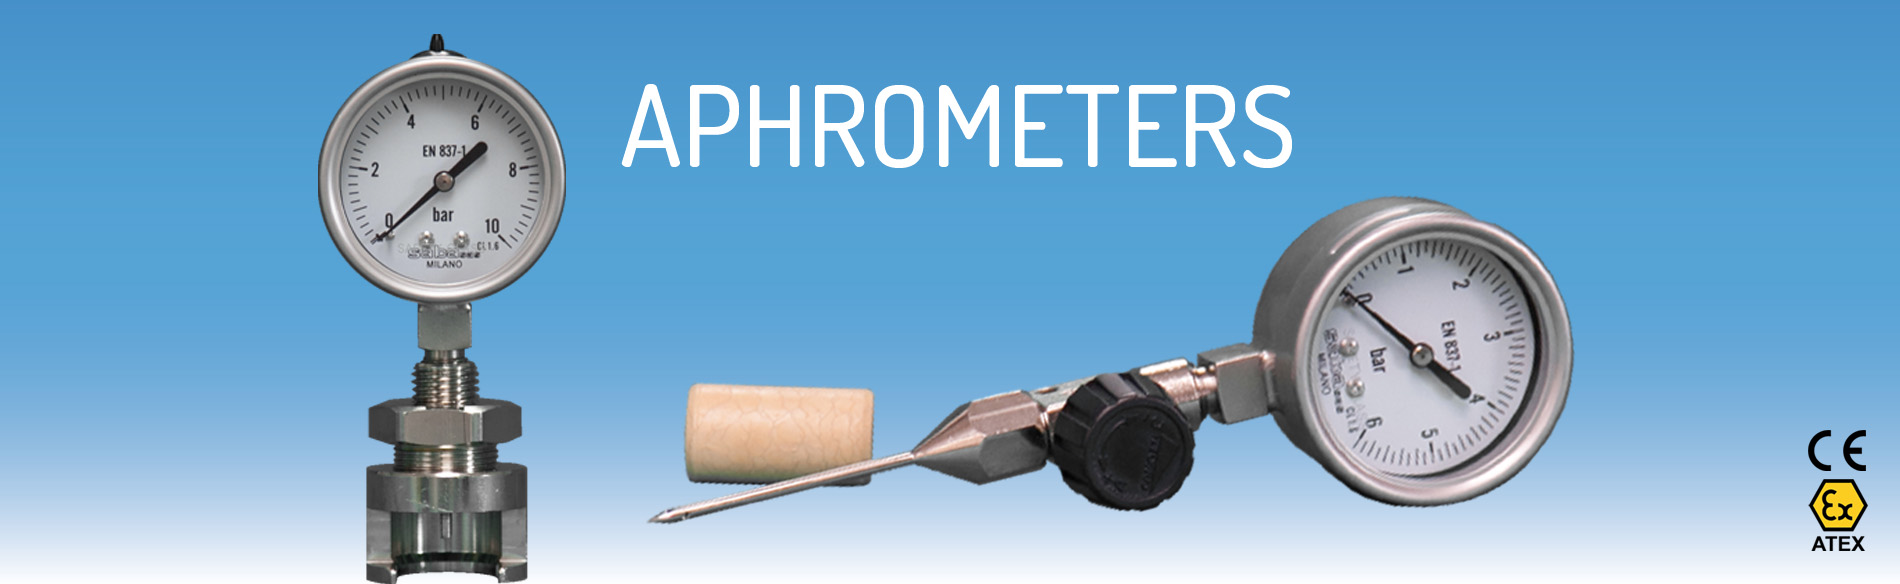 Aphrometer for crown cap and bootles